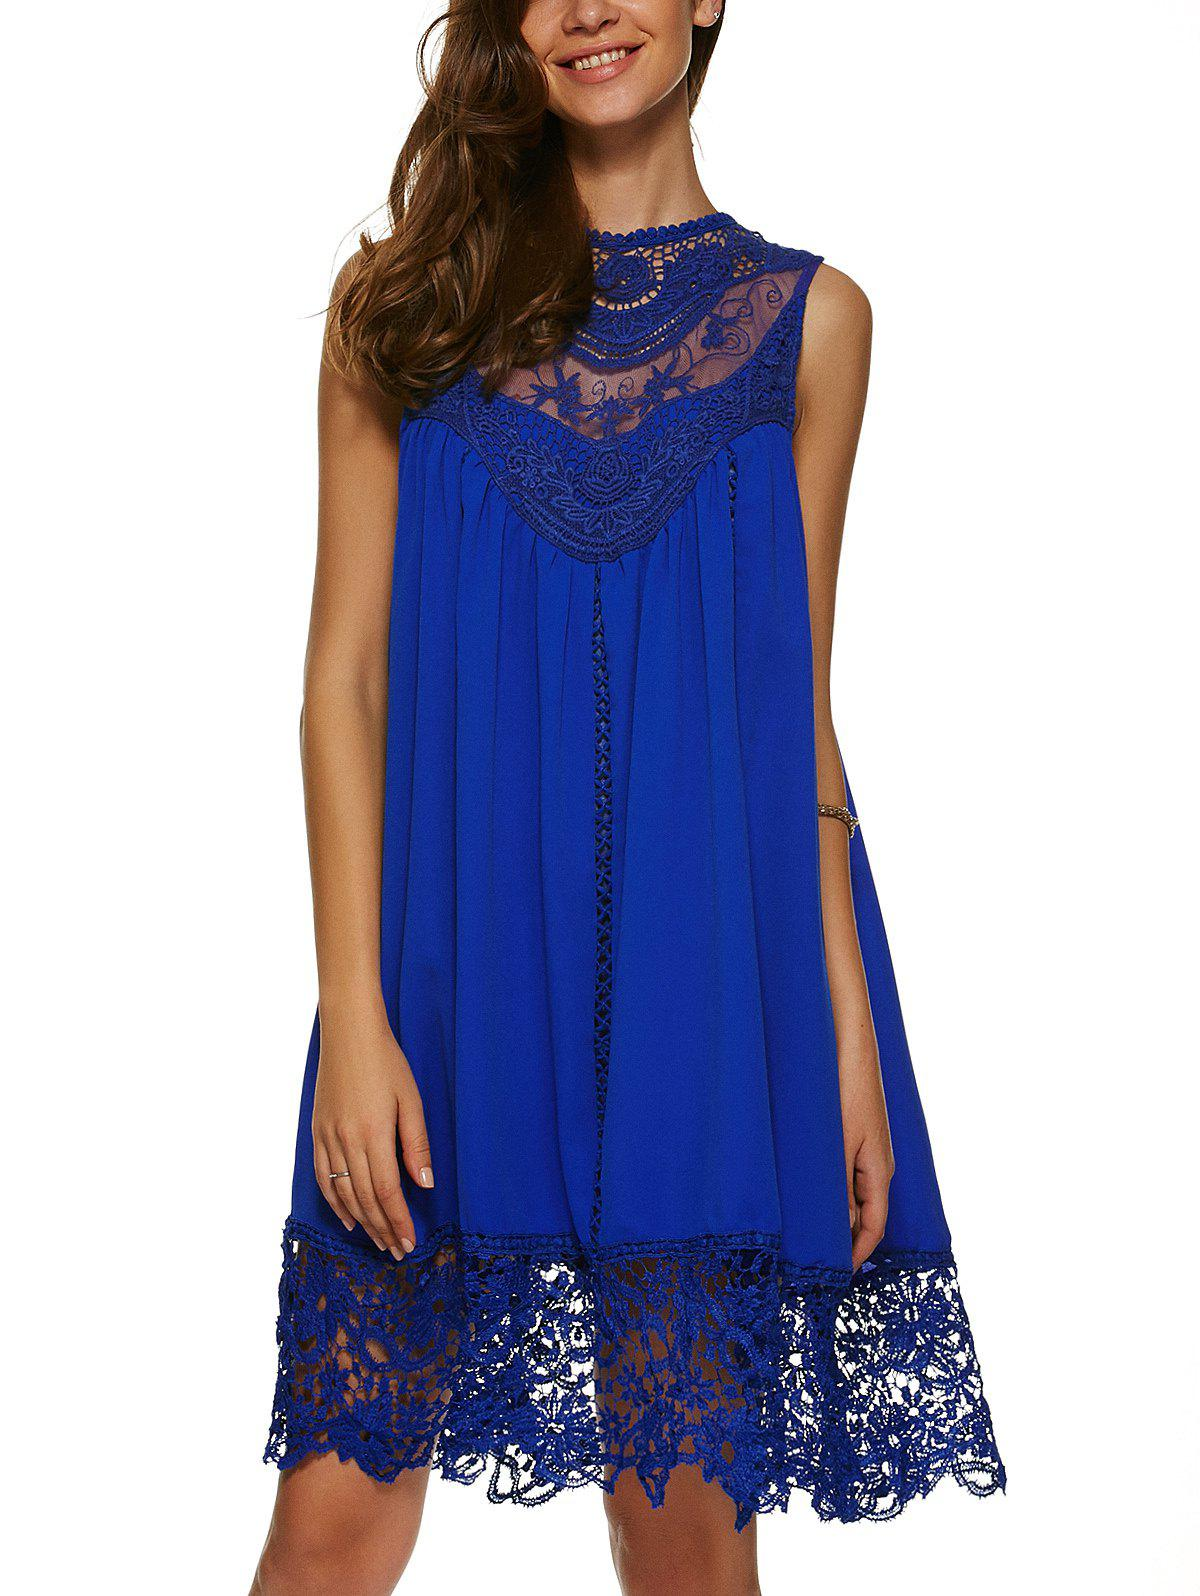 Lace Spliced Loose Fitting Shift Dress - SAPPHIRE BLUE XL